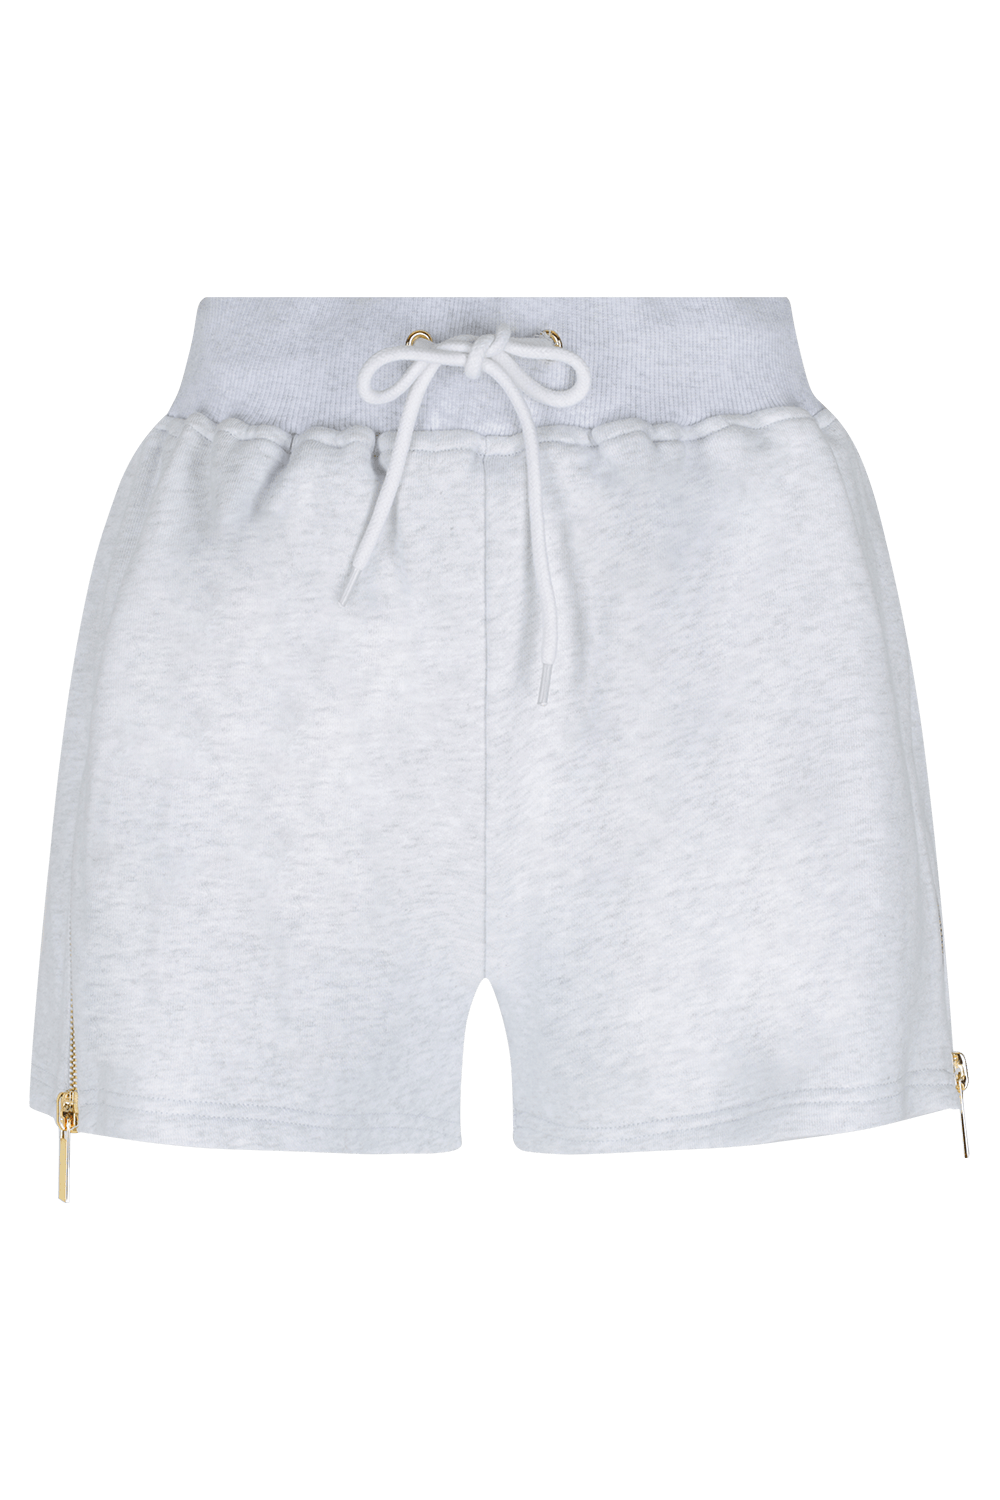 HATE ME Shorts - GRY/GLD - HAUS OF SONG